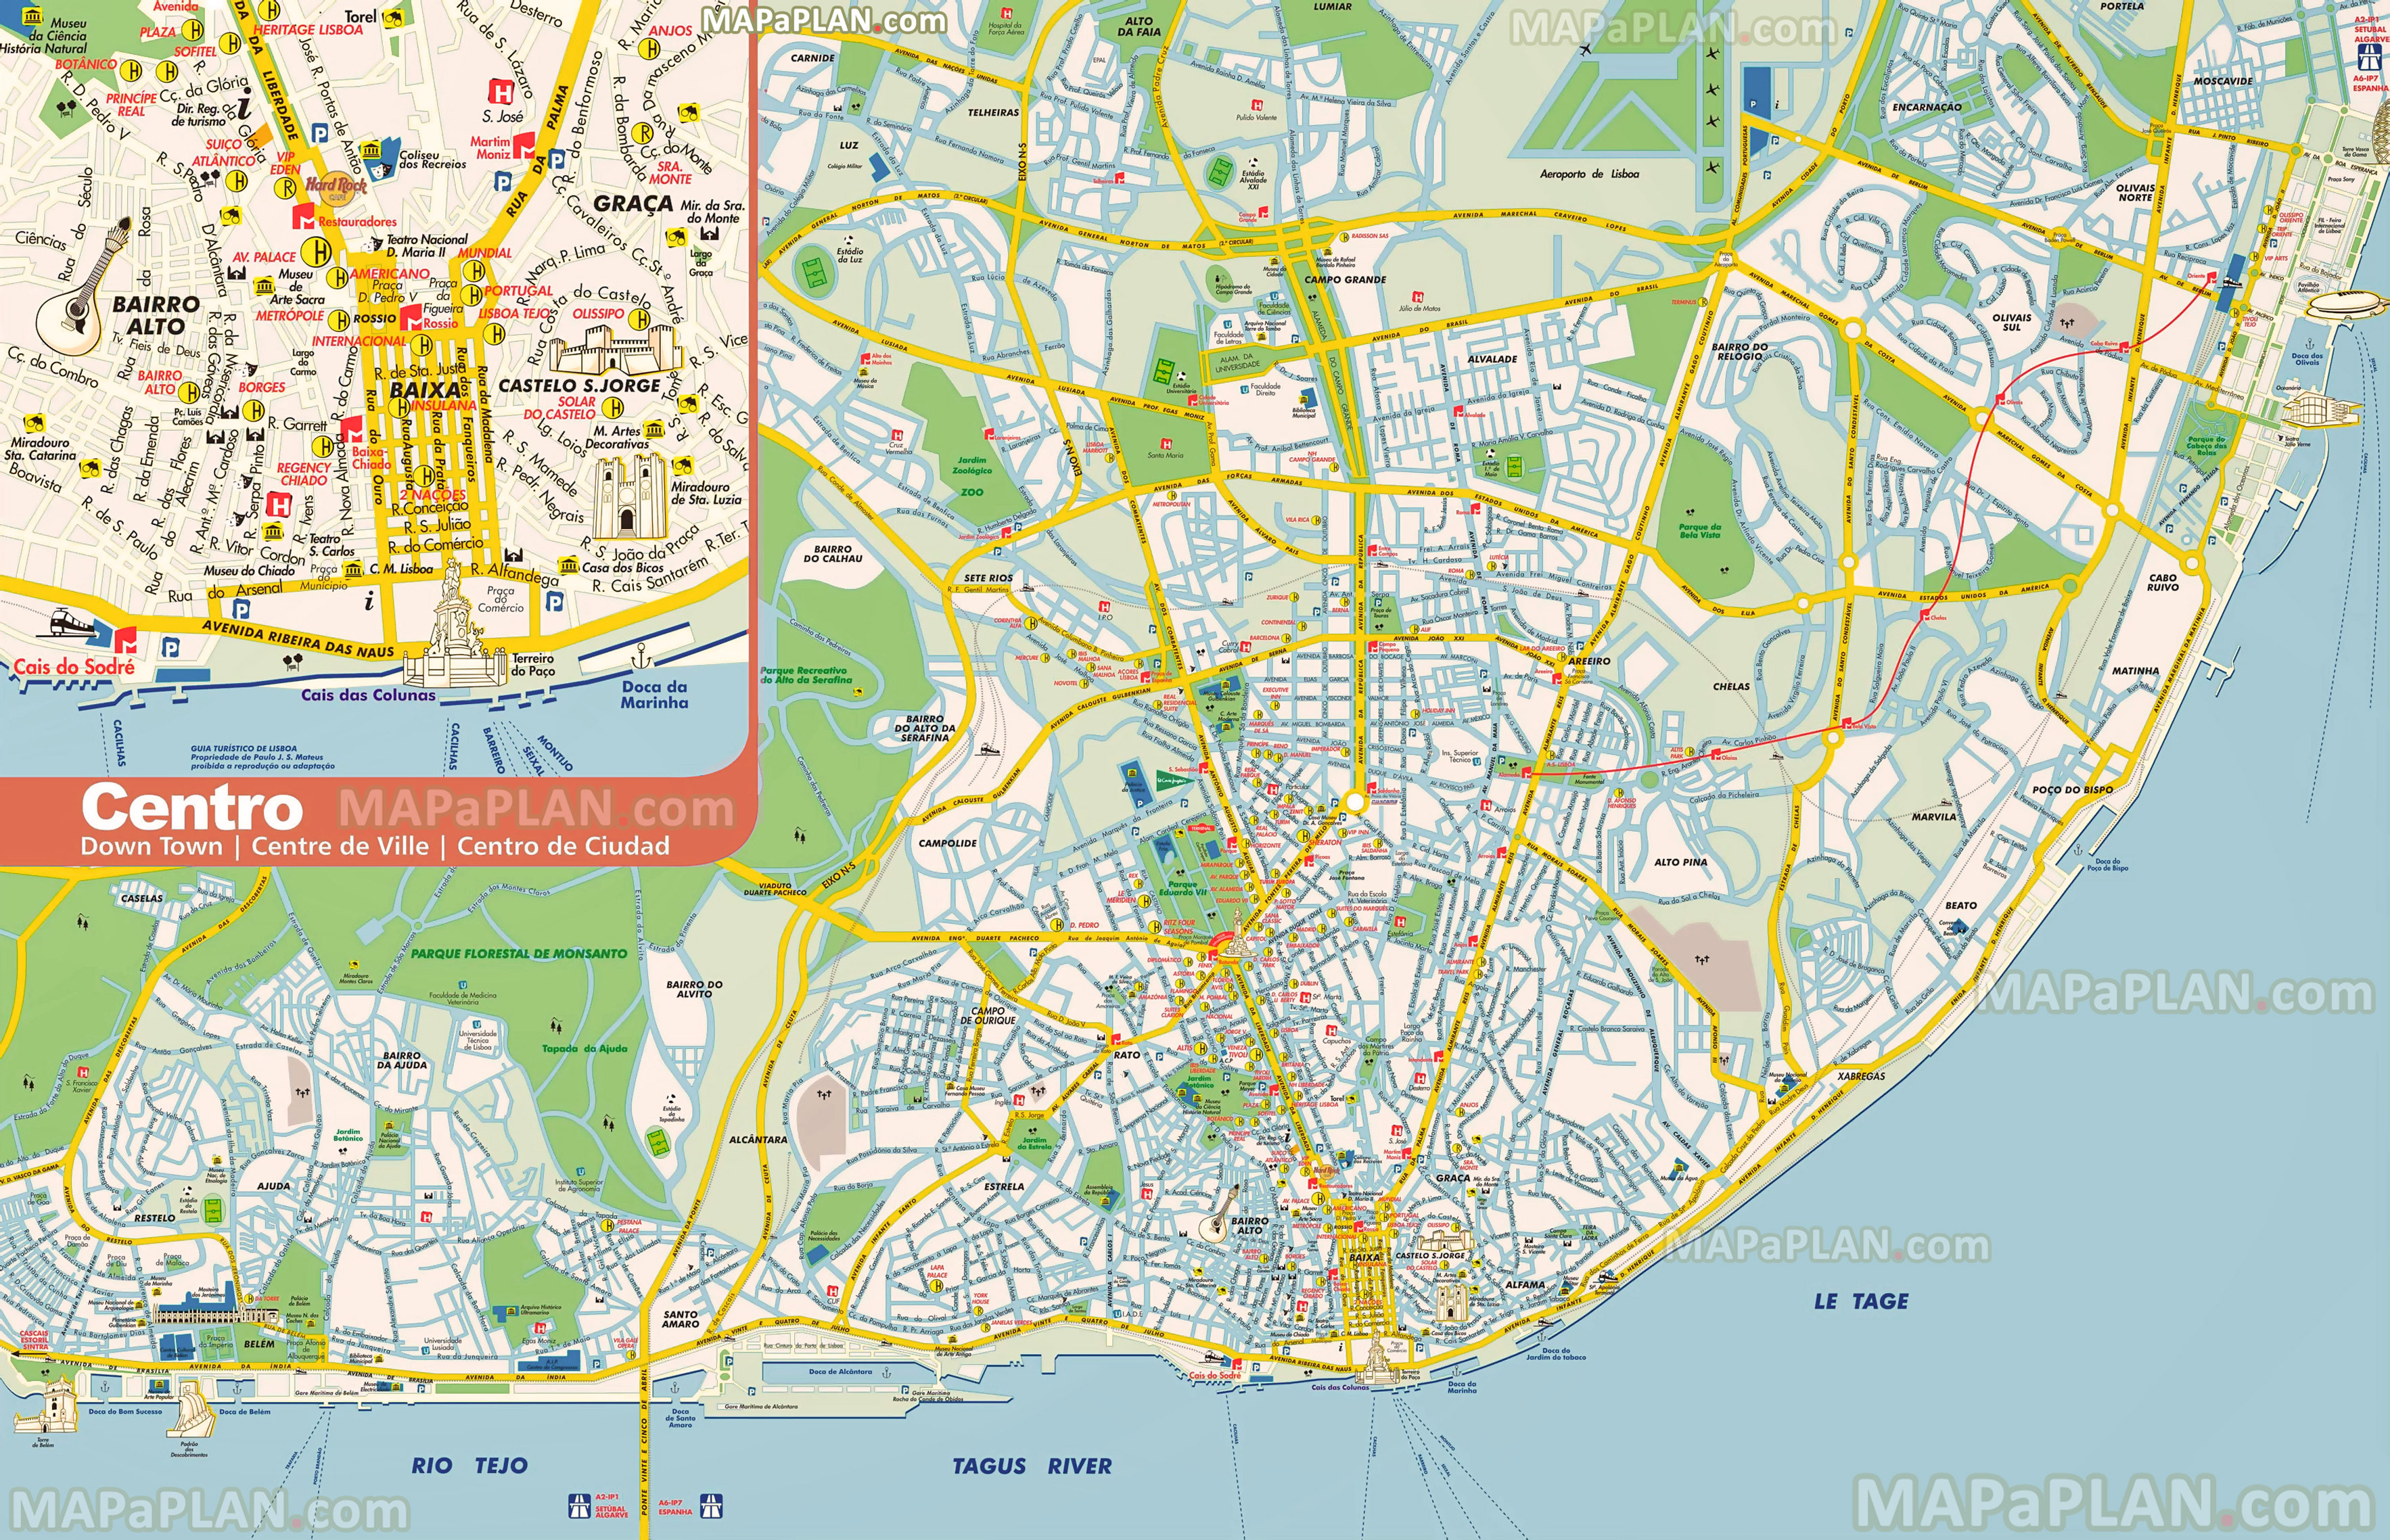 Lisbon maps Top tourist attractions Free printable city street map